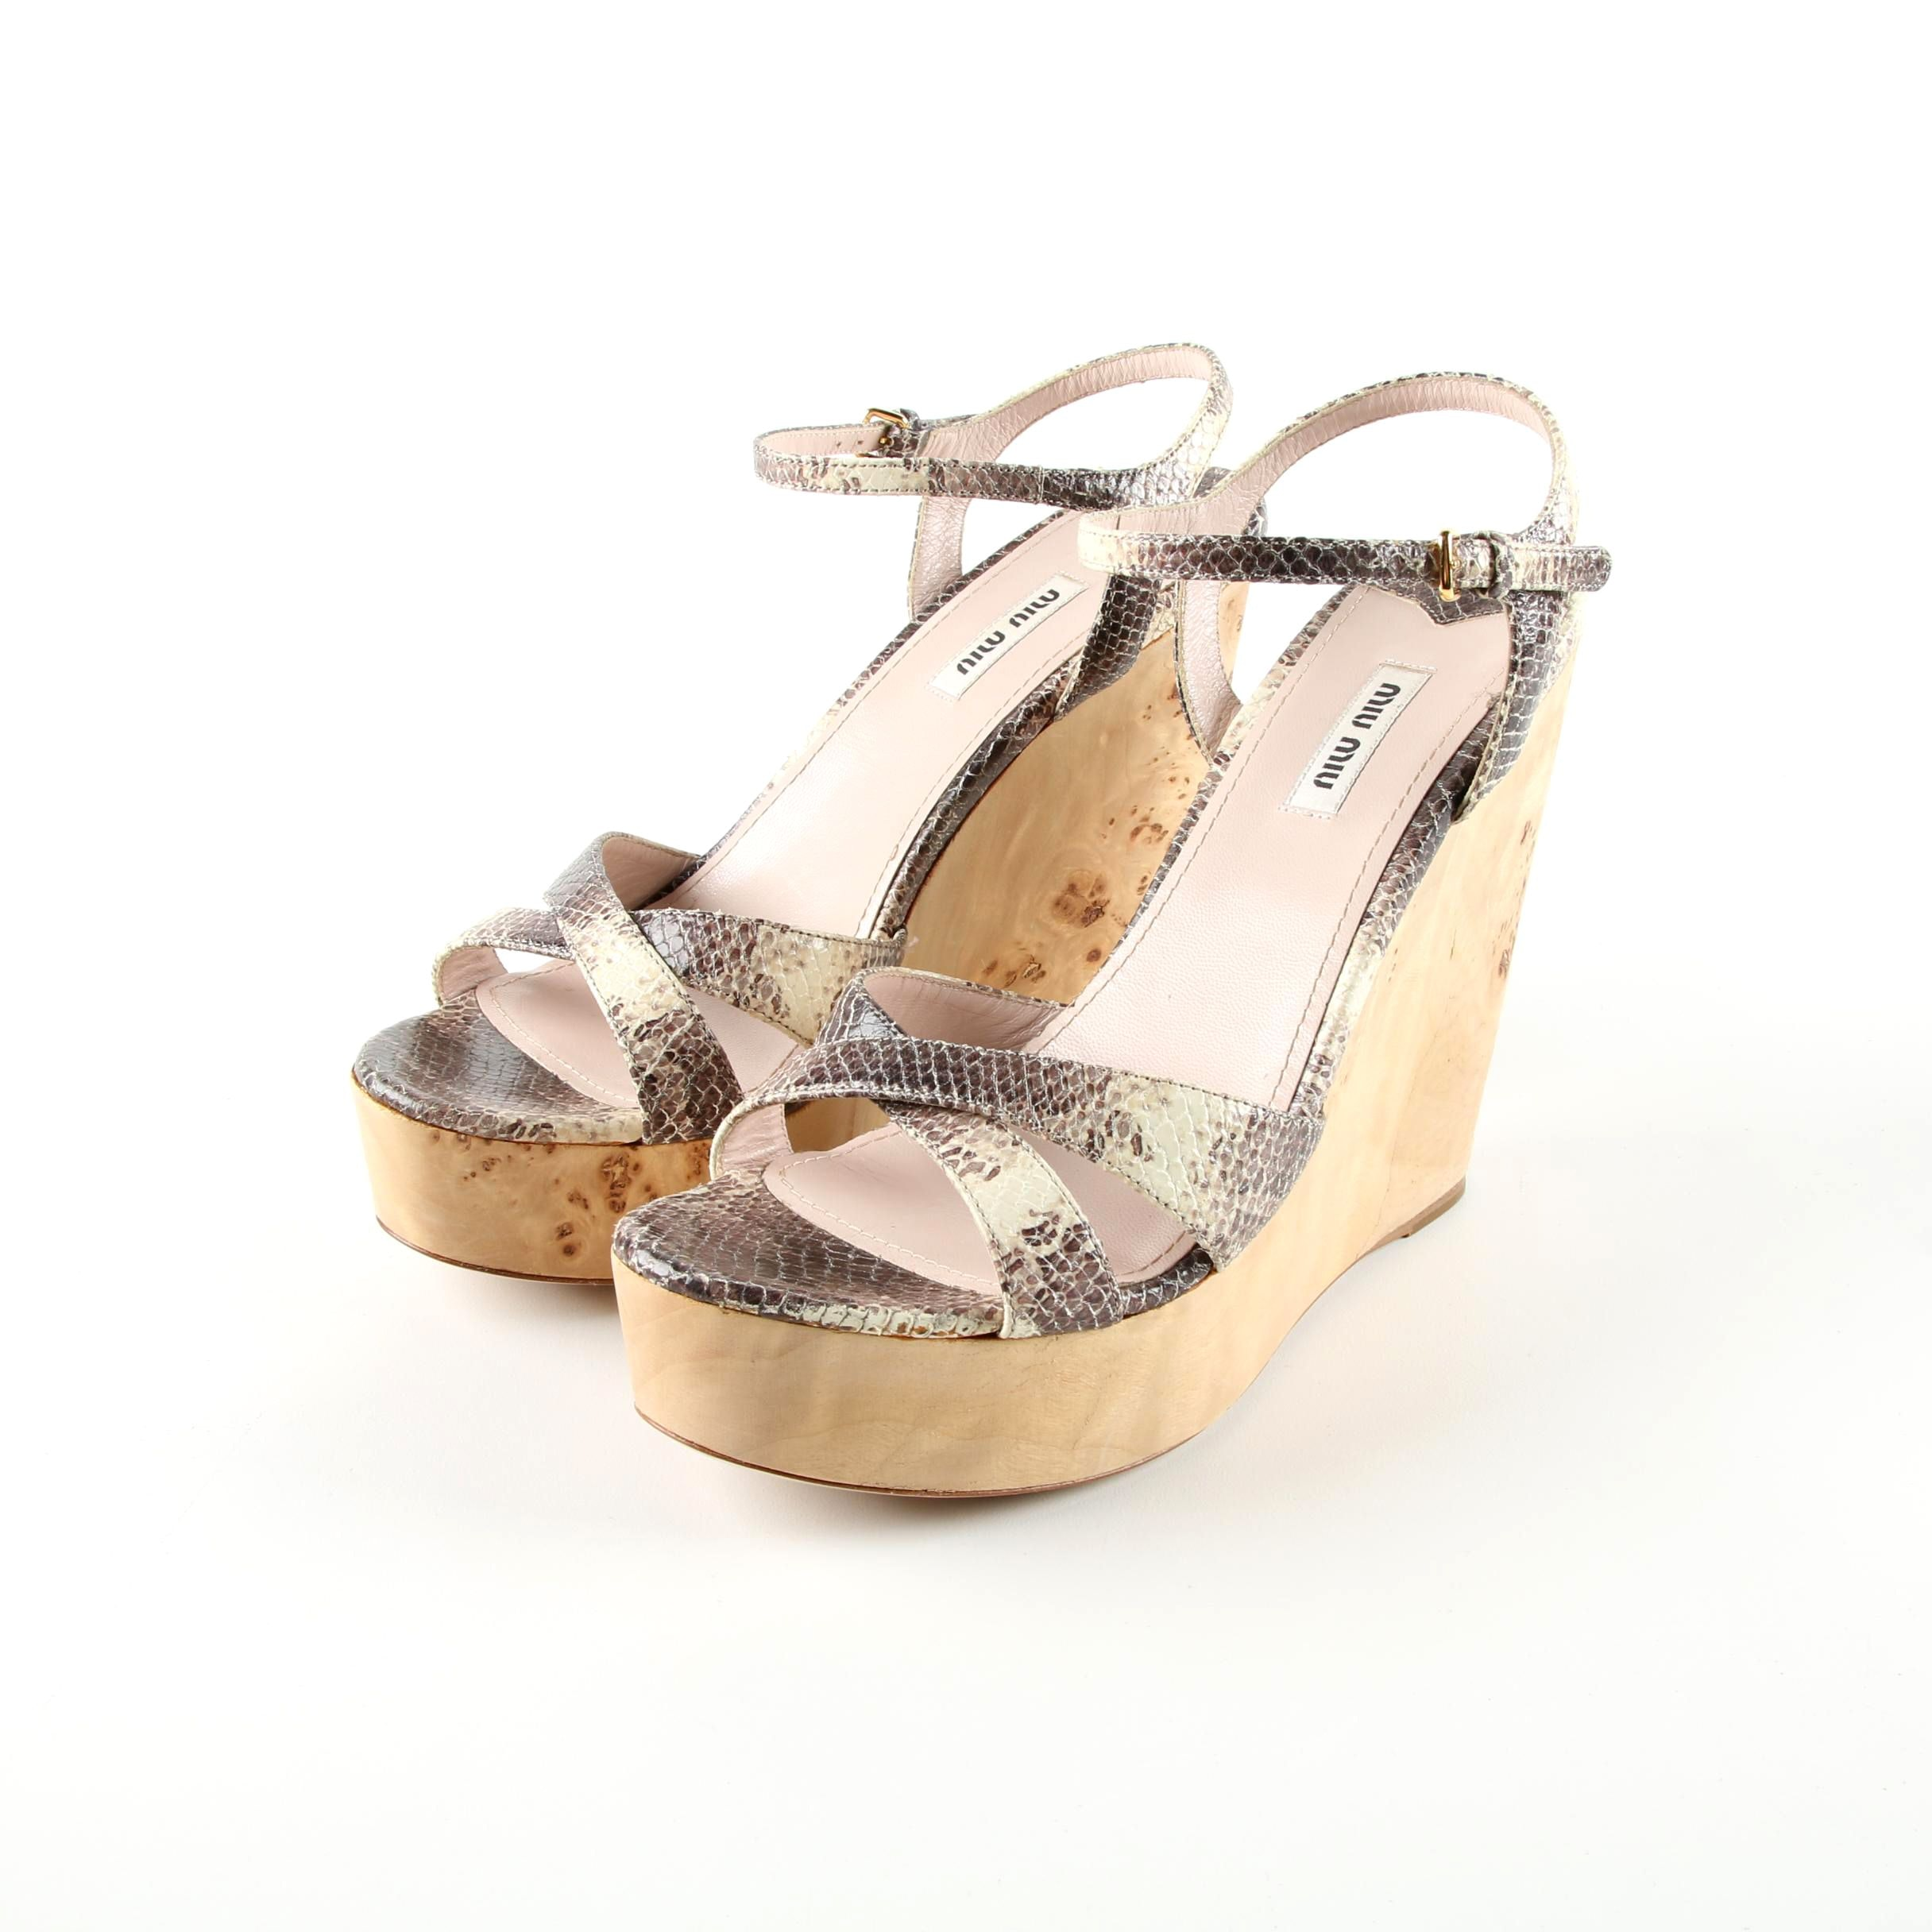 Miu Miu Python and Burl Wood Wedge Sandals